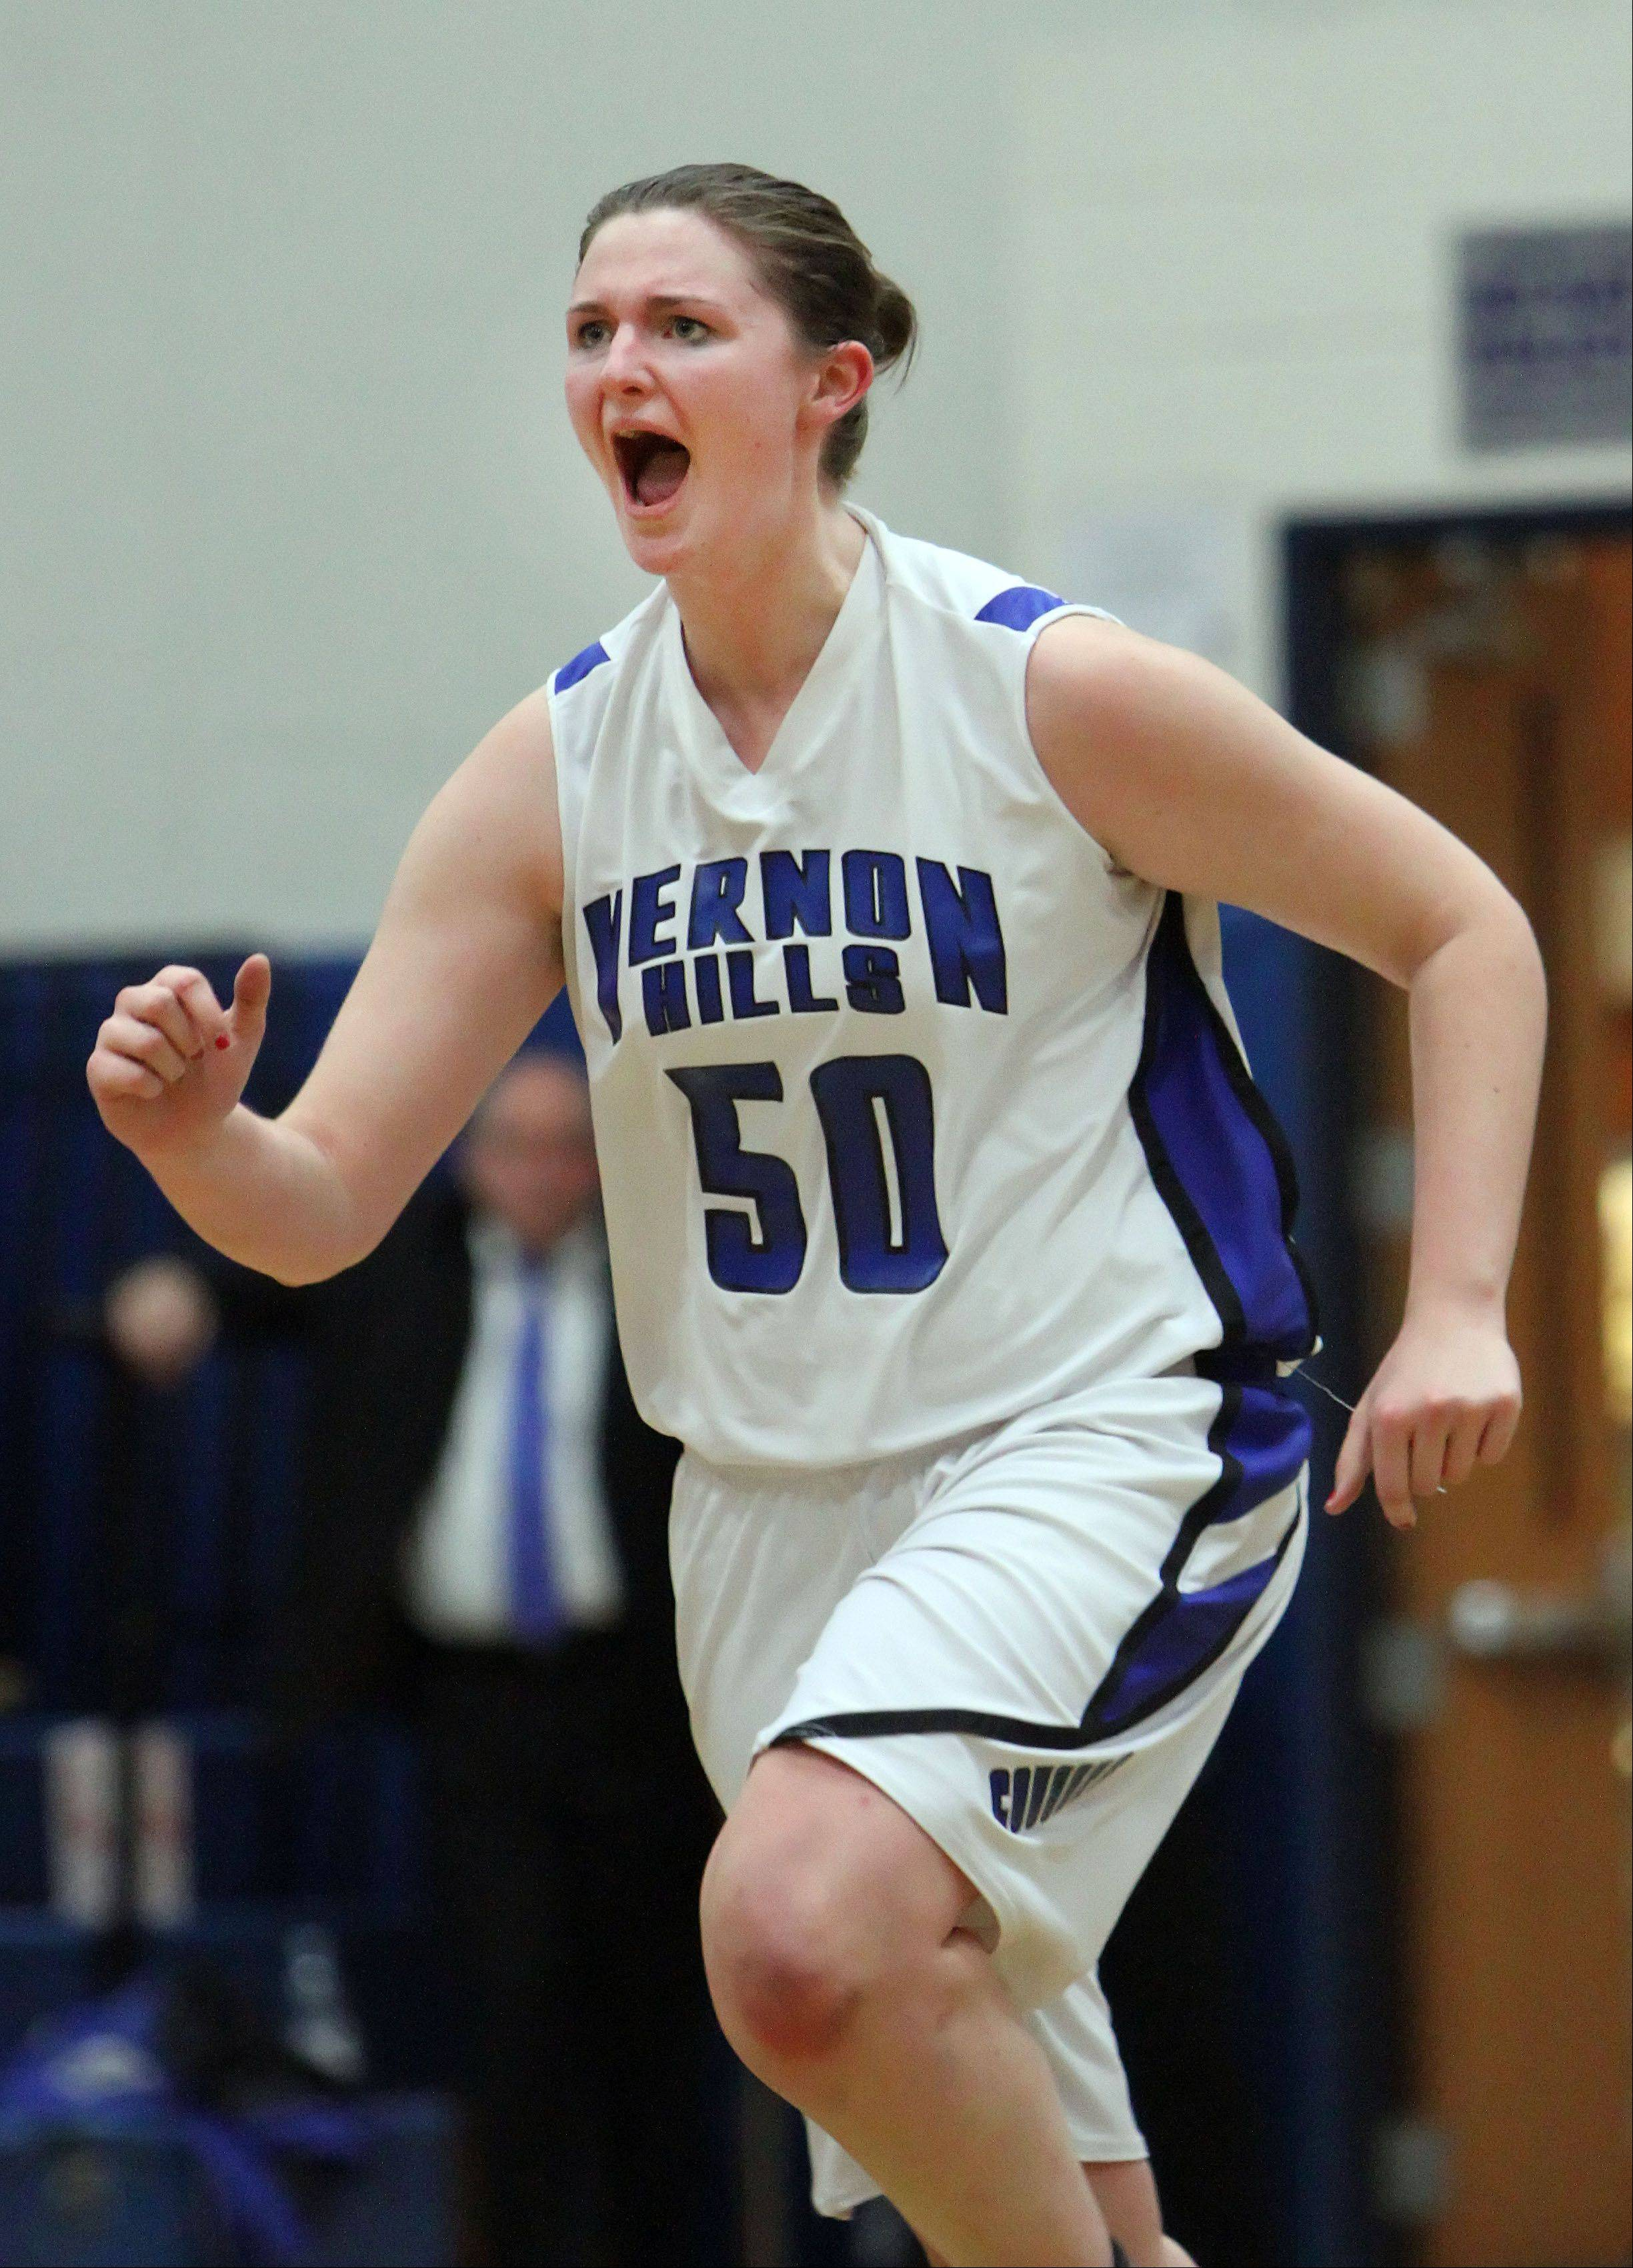 Vernon Hills' Meri Bennett-Swanson celebrates during Tuesday's game against Stevenson.